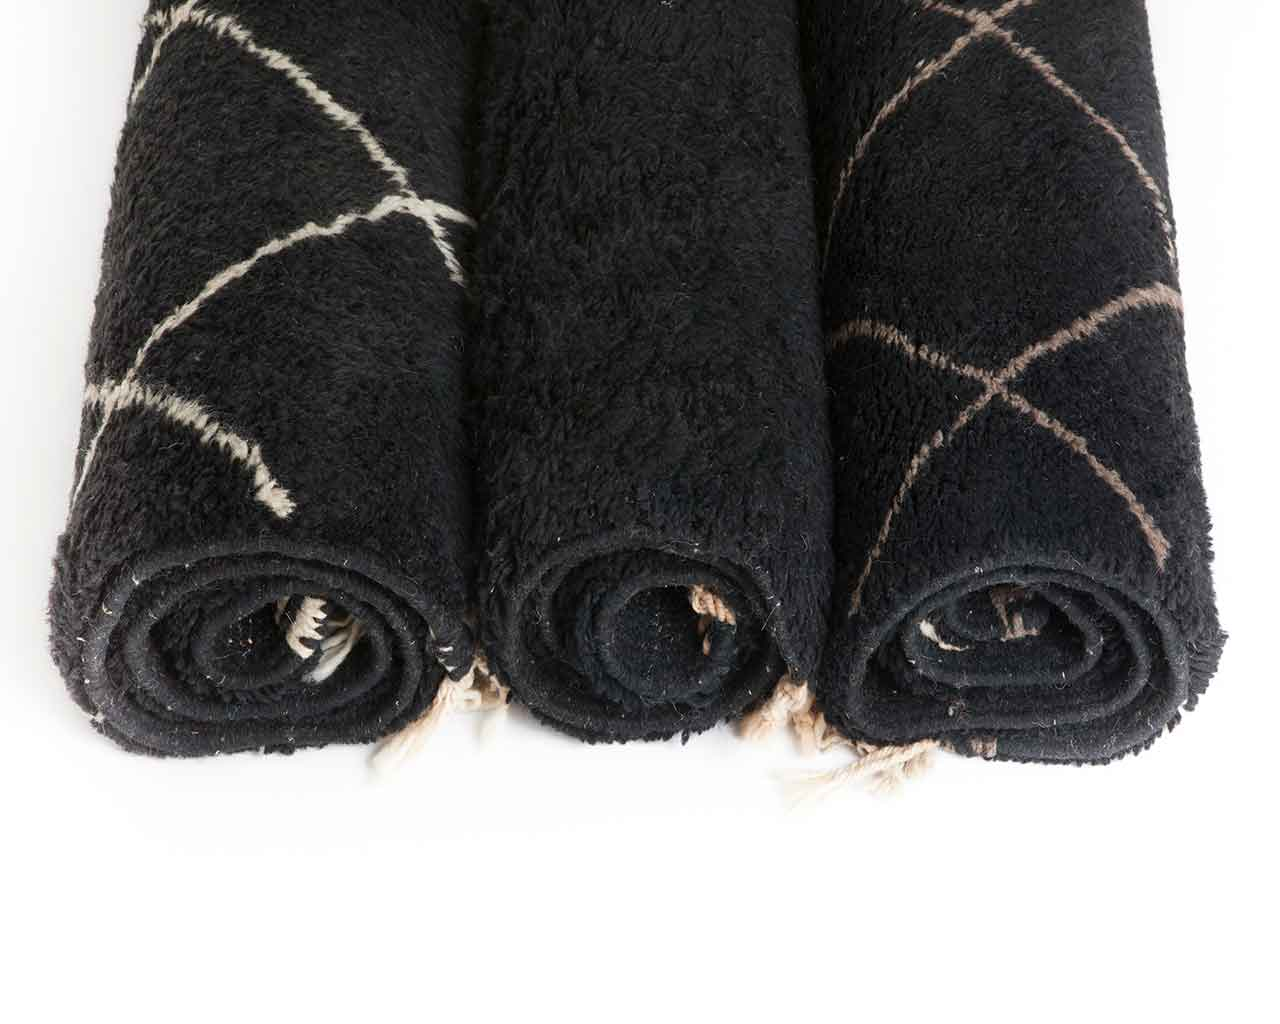 three black beni ourain carpets designers 2